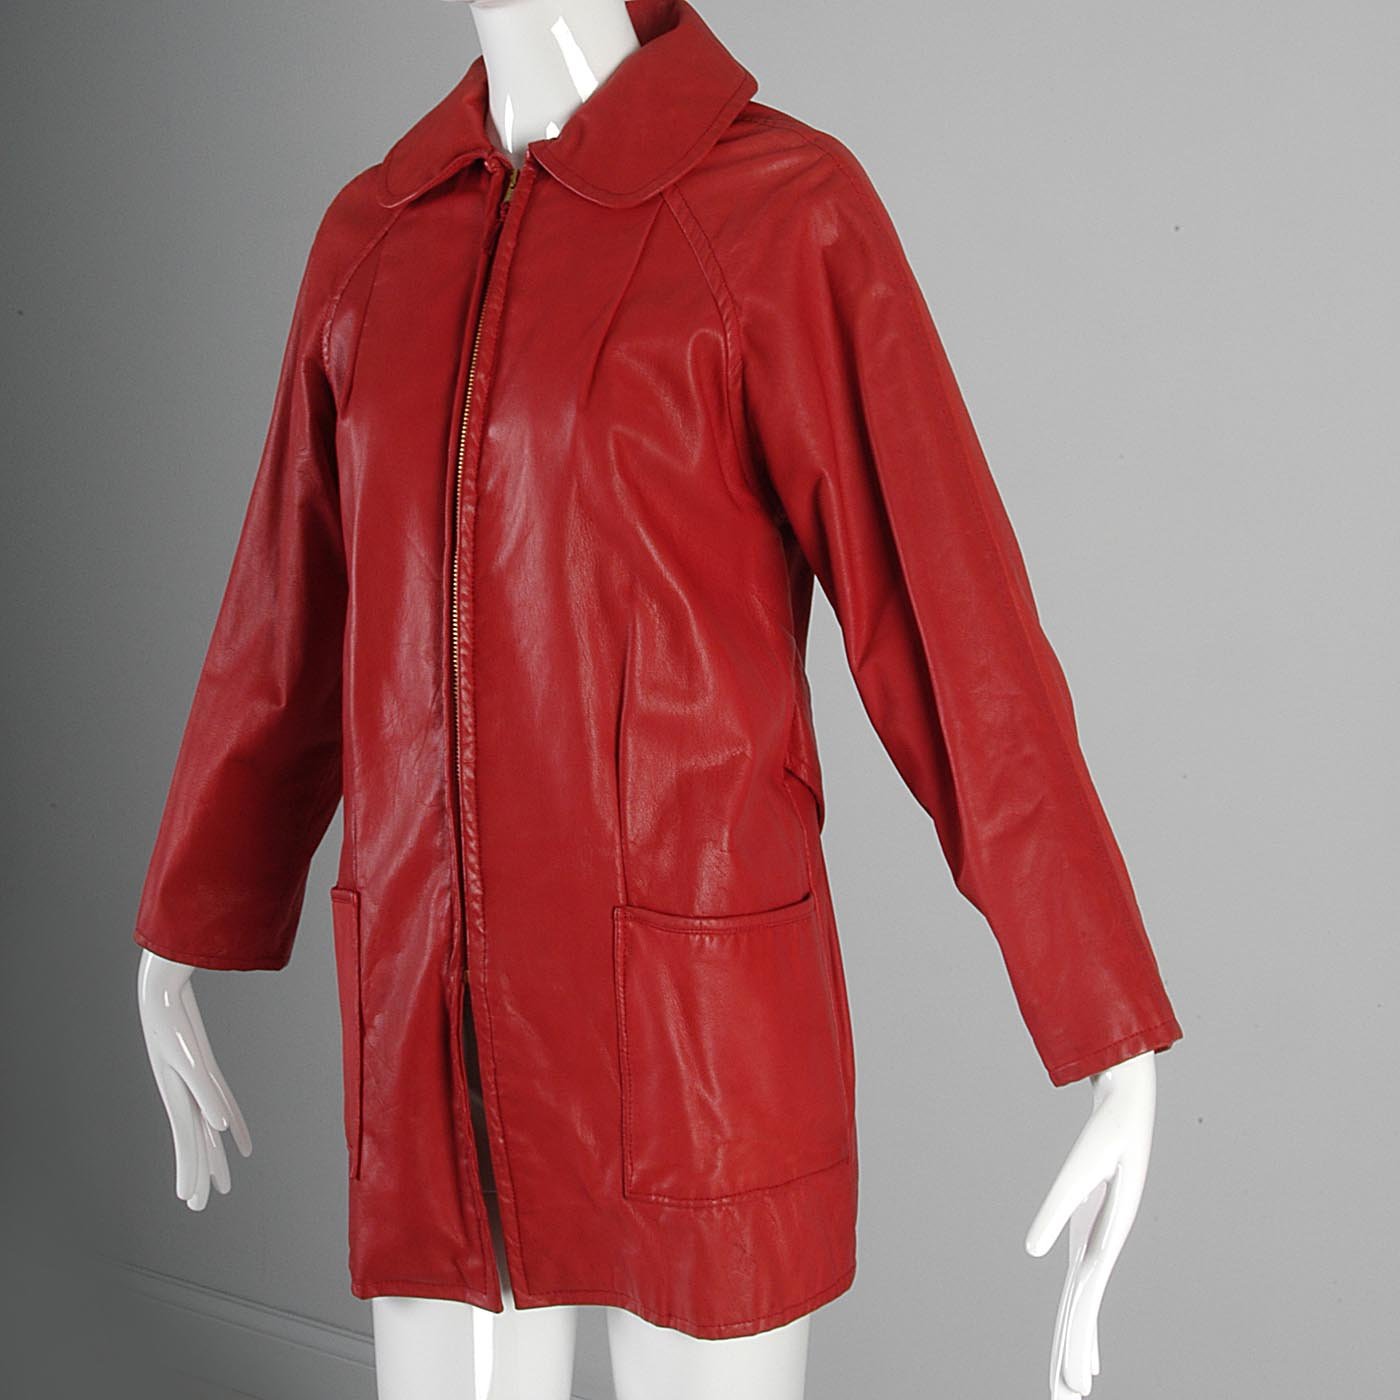 1960s Bright Lipstick Red Leather Jacket